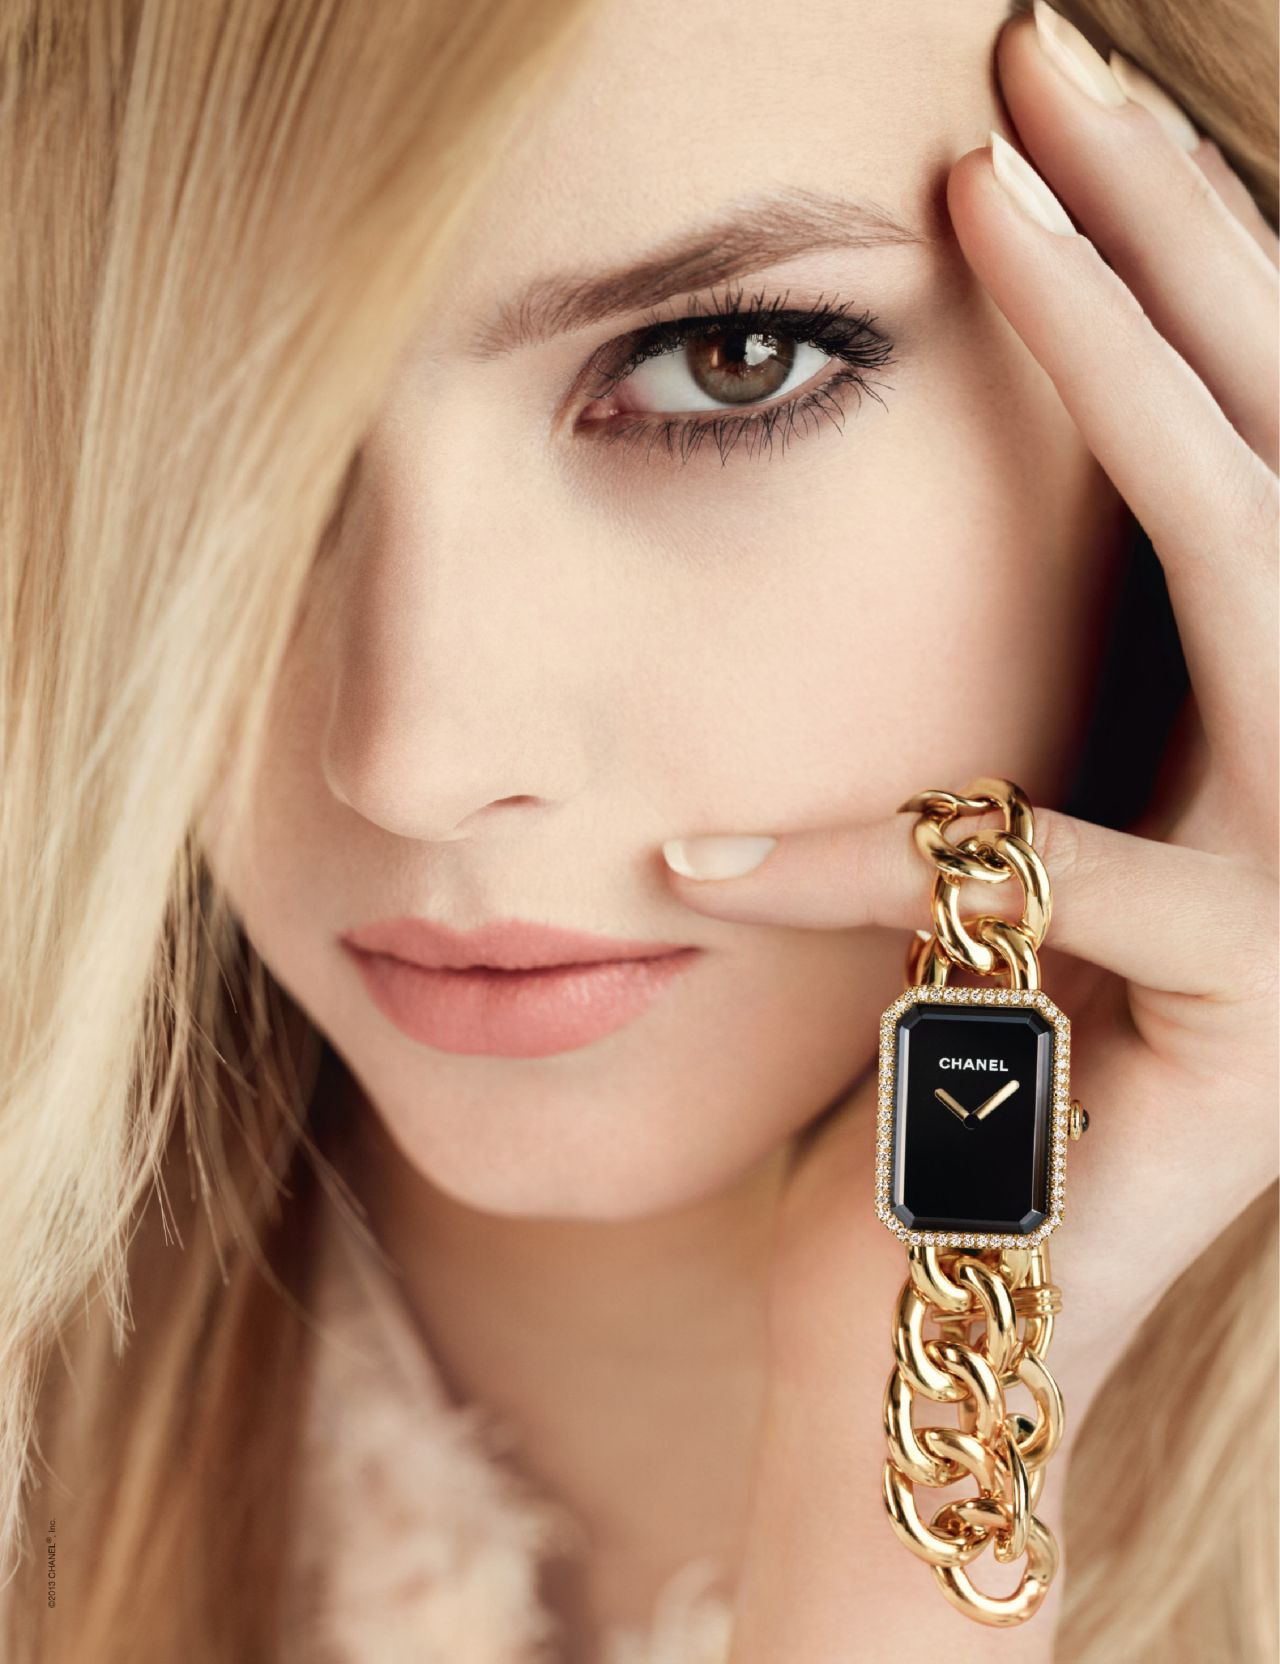 Sigrid Agren Photoshoot For Chanel Fine Jewelry 2013 Ad